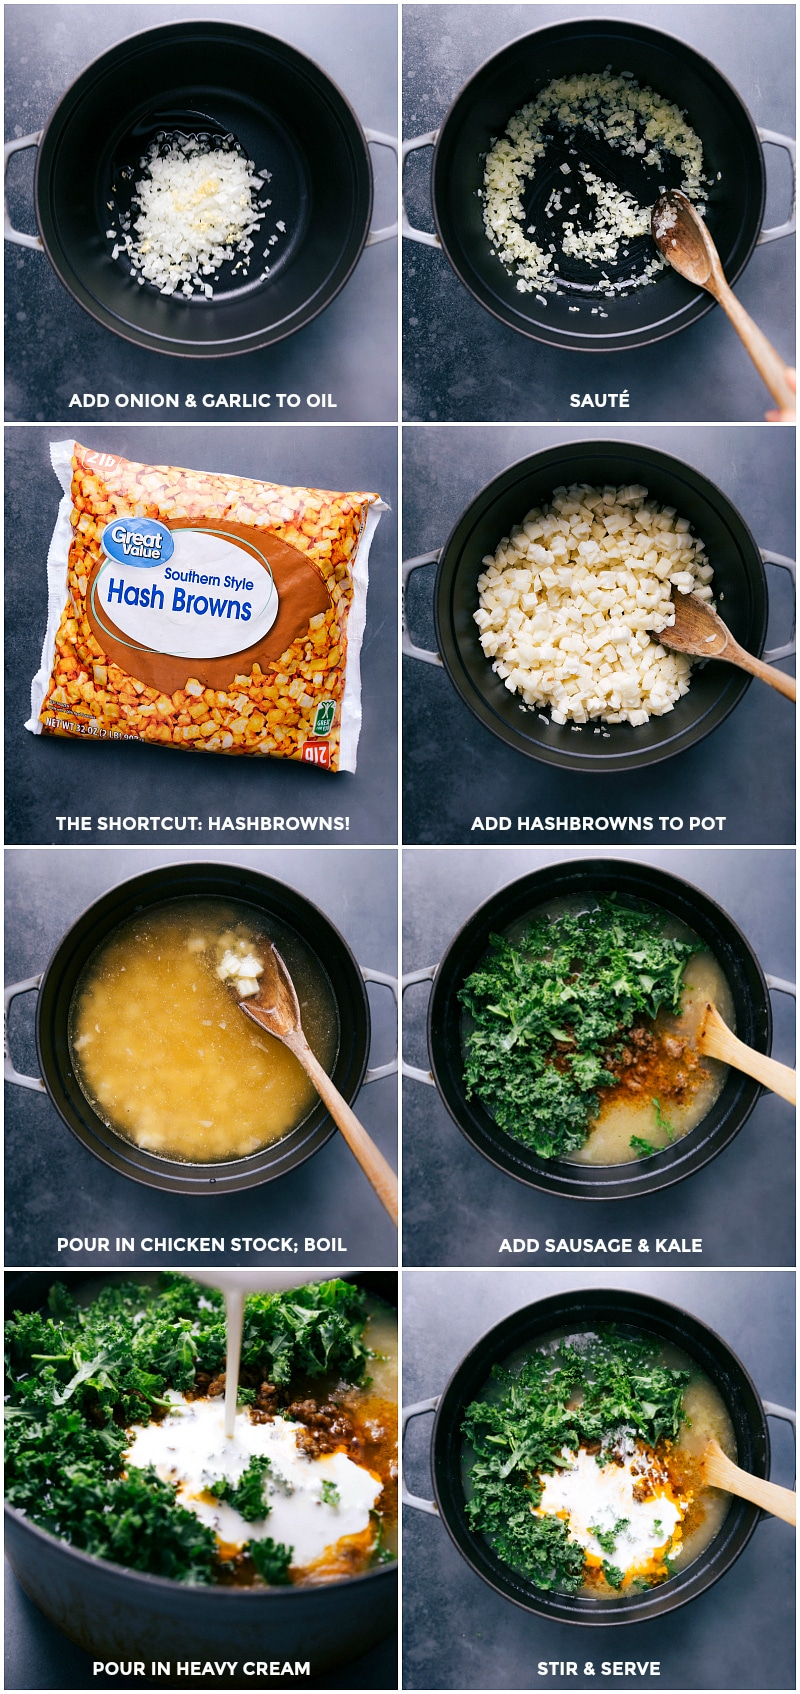 Process shots-- images of all the ingredients being added to the pot and being mixed together.